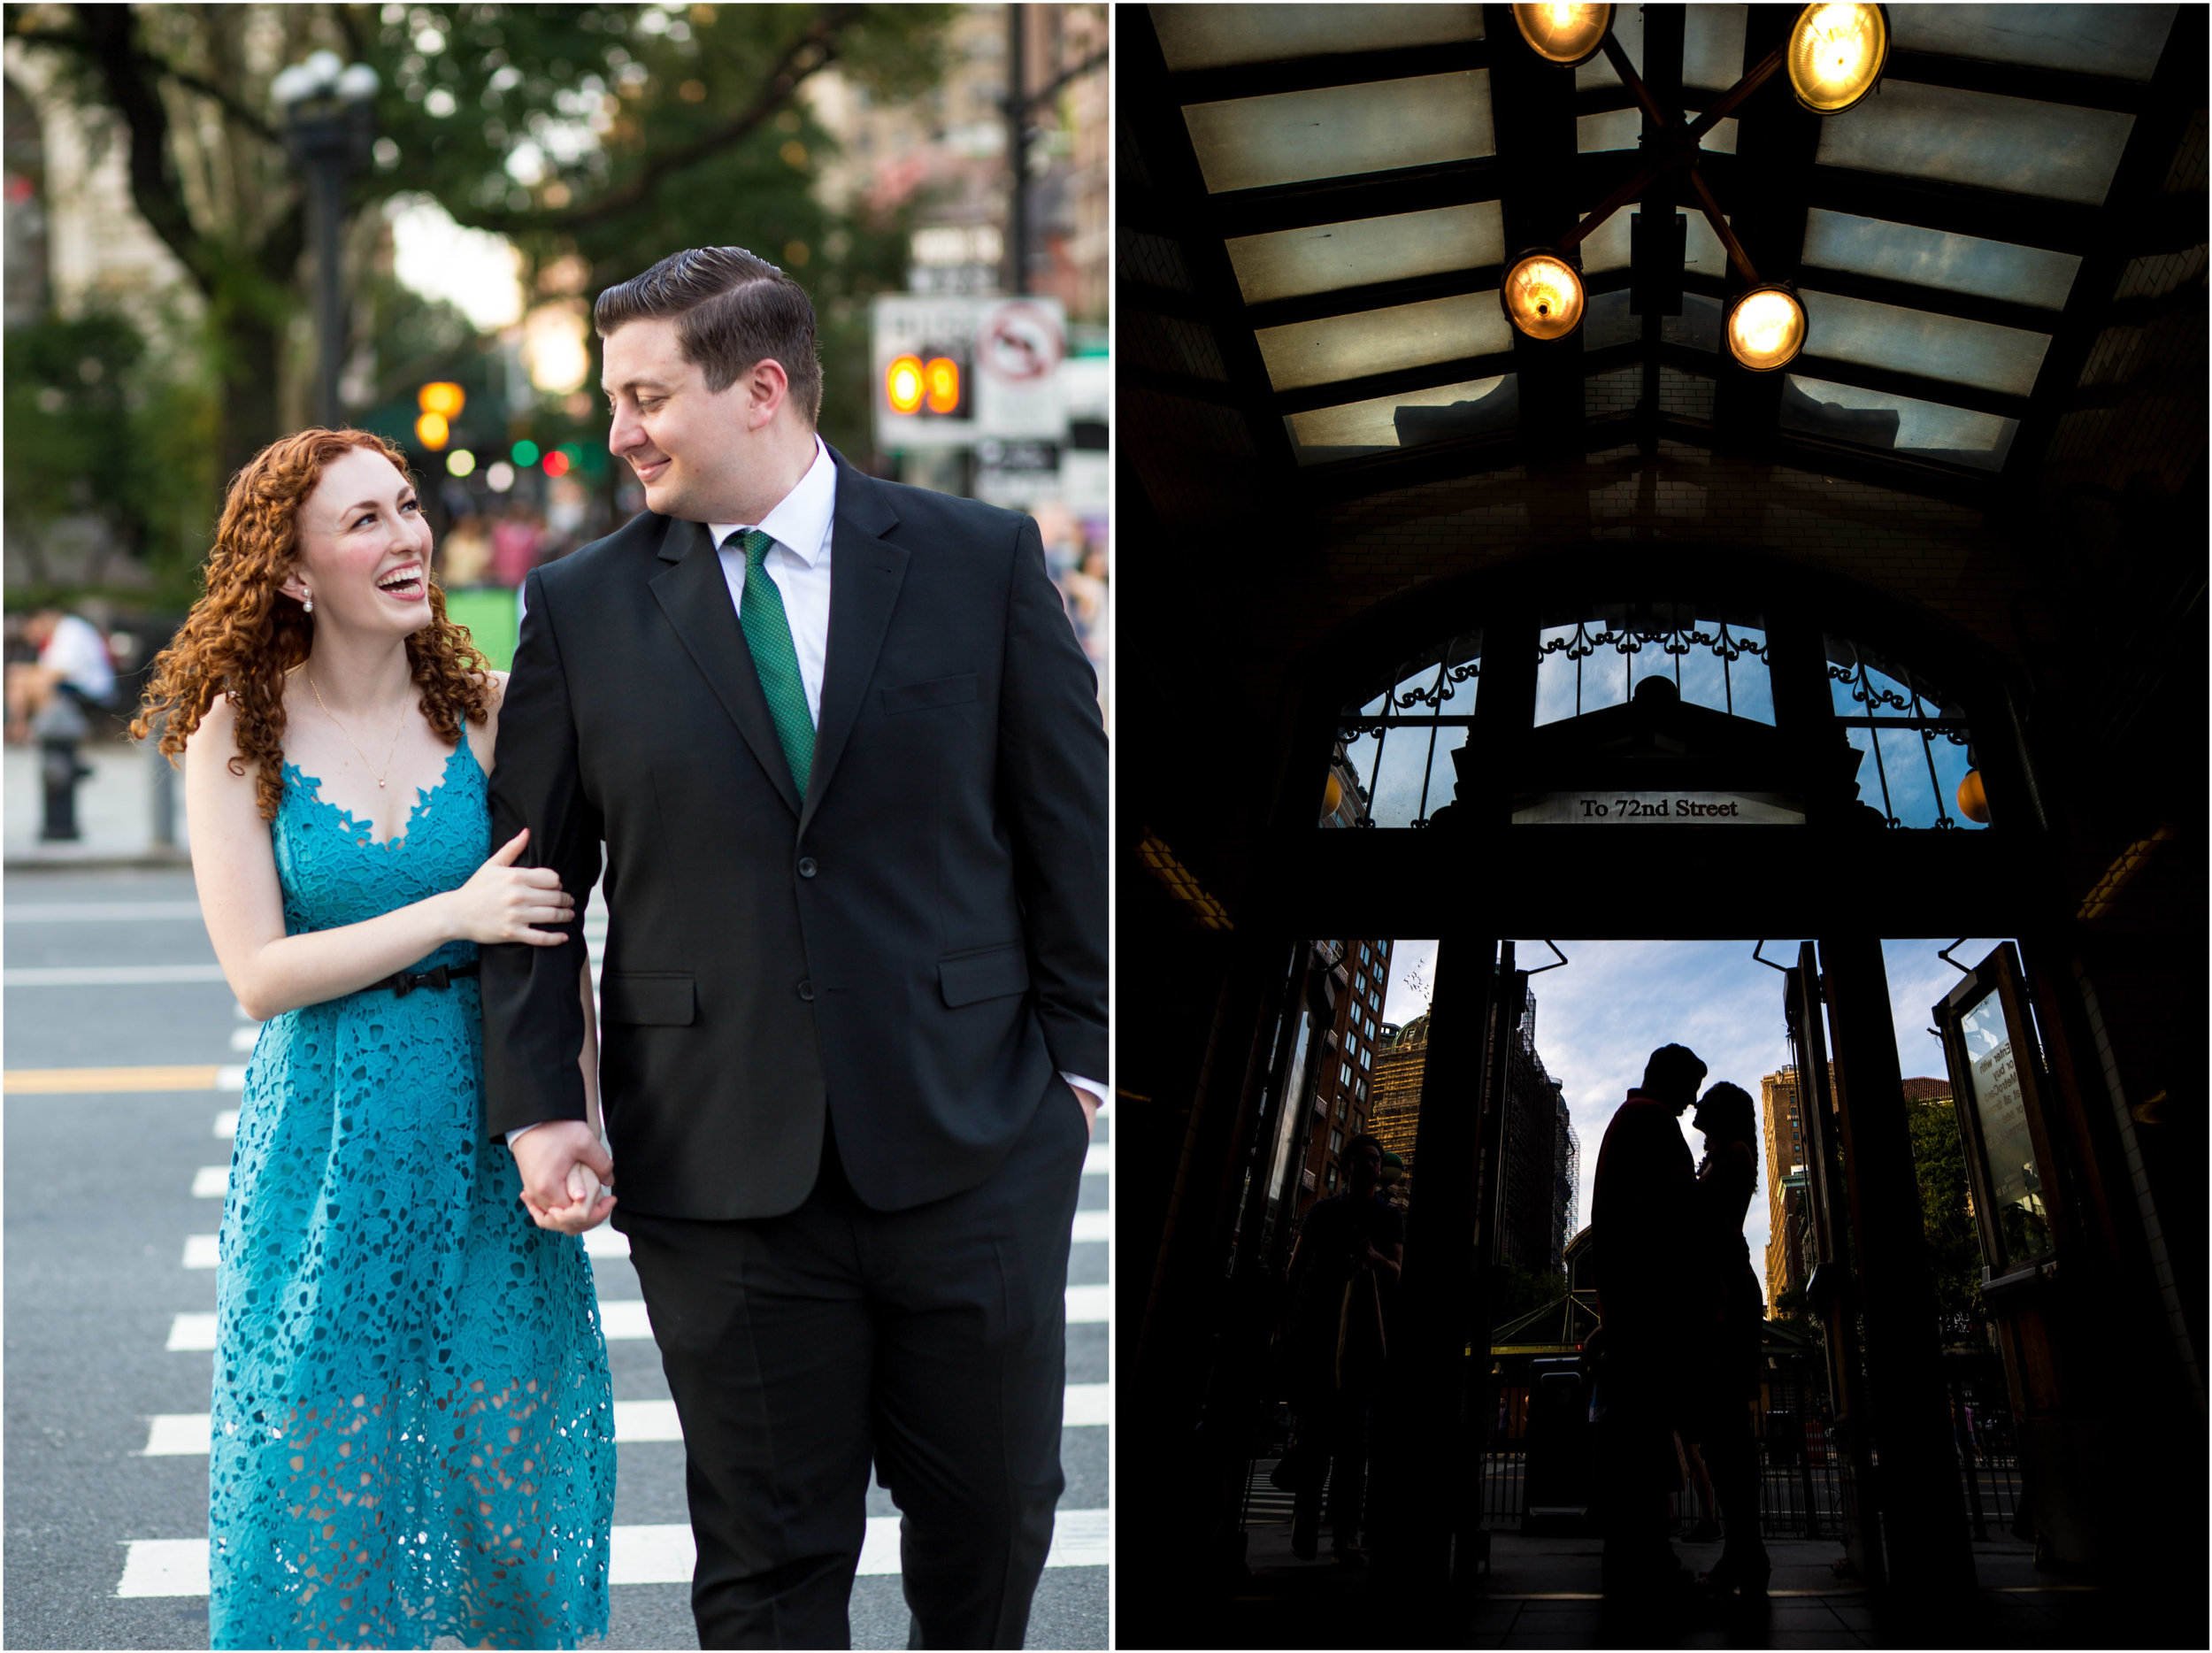 NYC Engagement Photo Session Shoot Upper West Side New York City Wedding Photographer_21.jpg